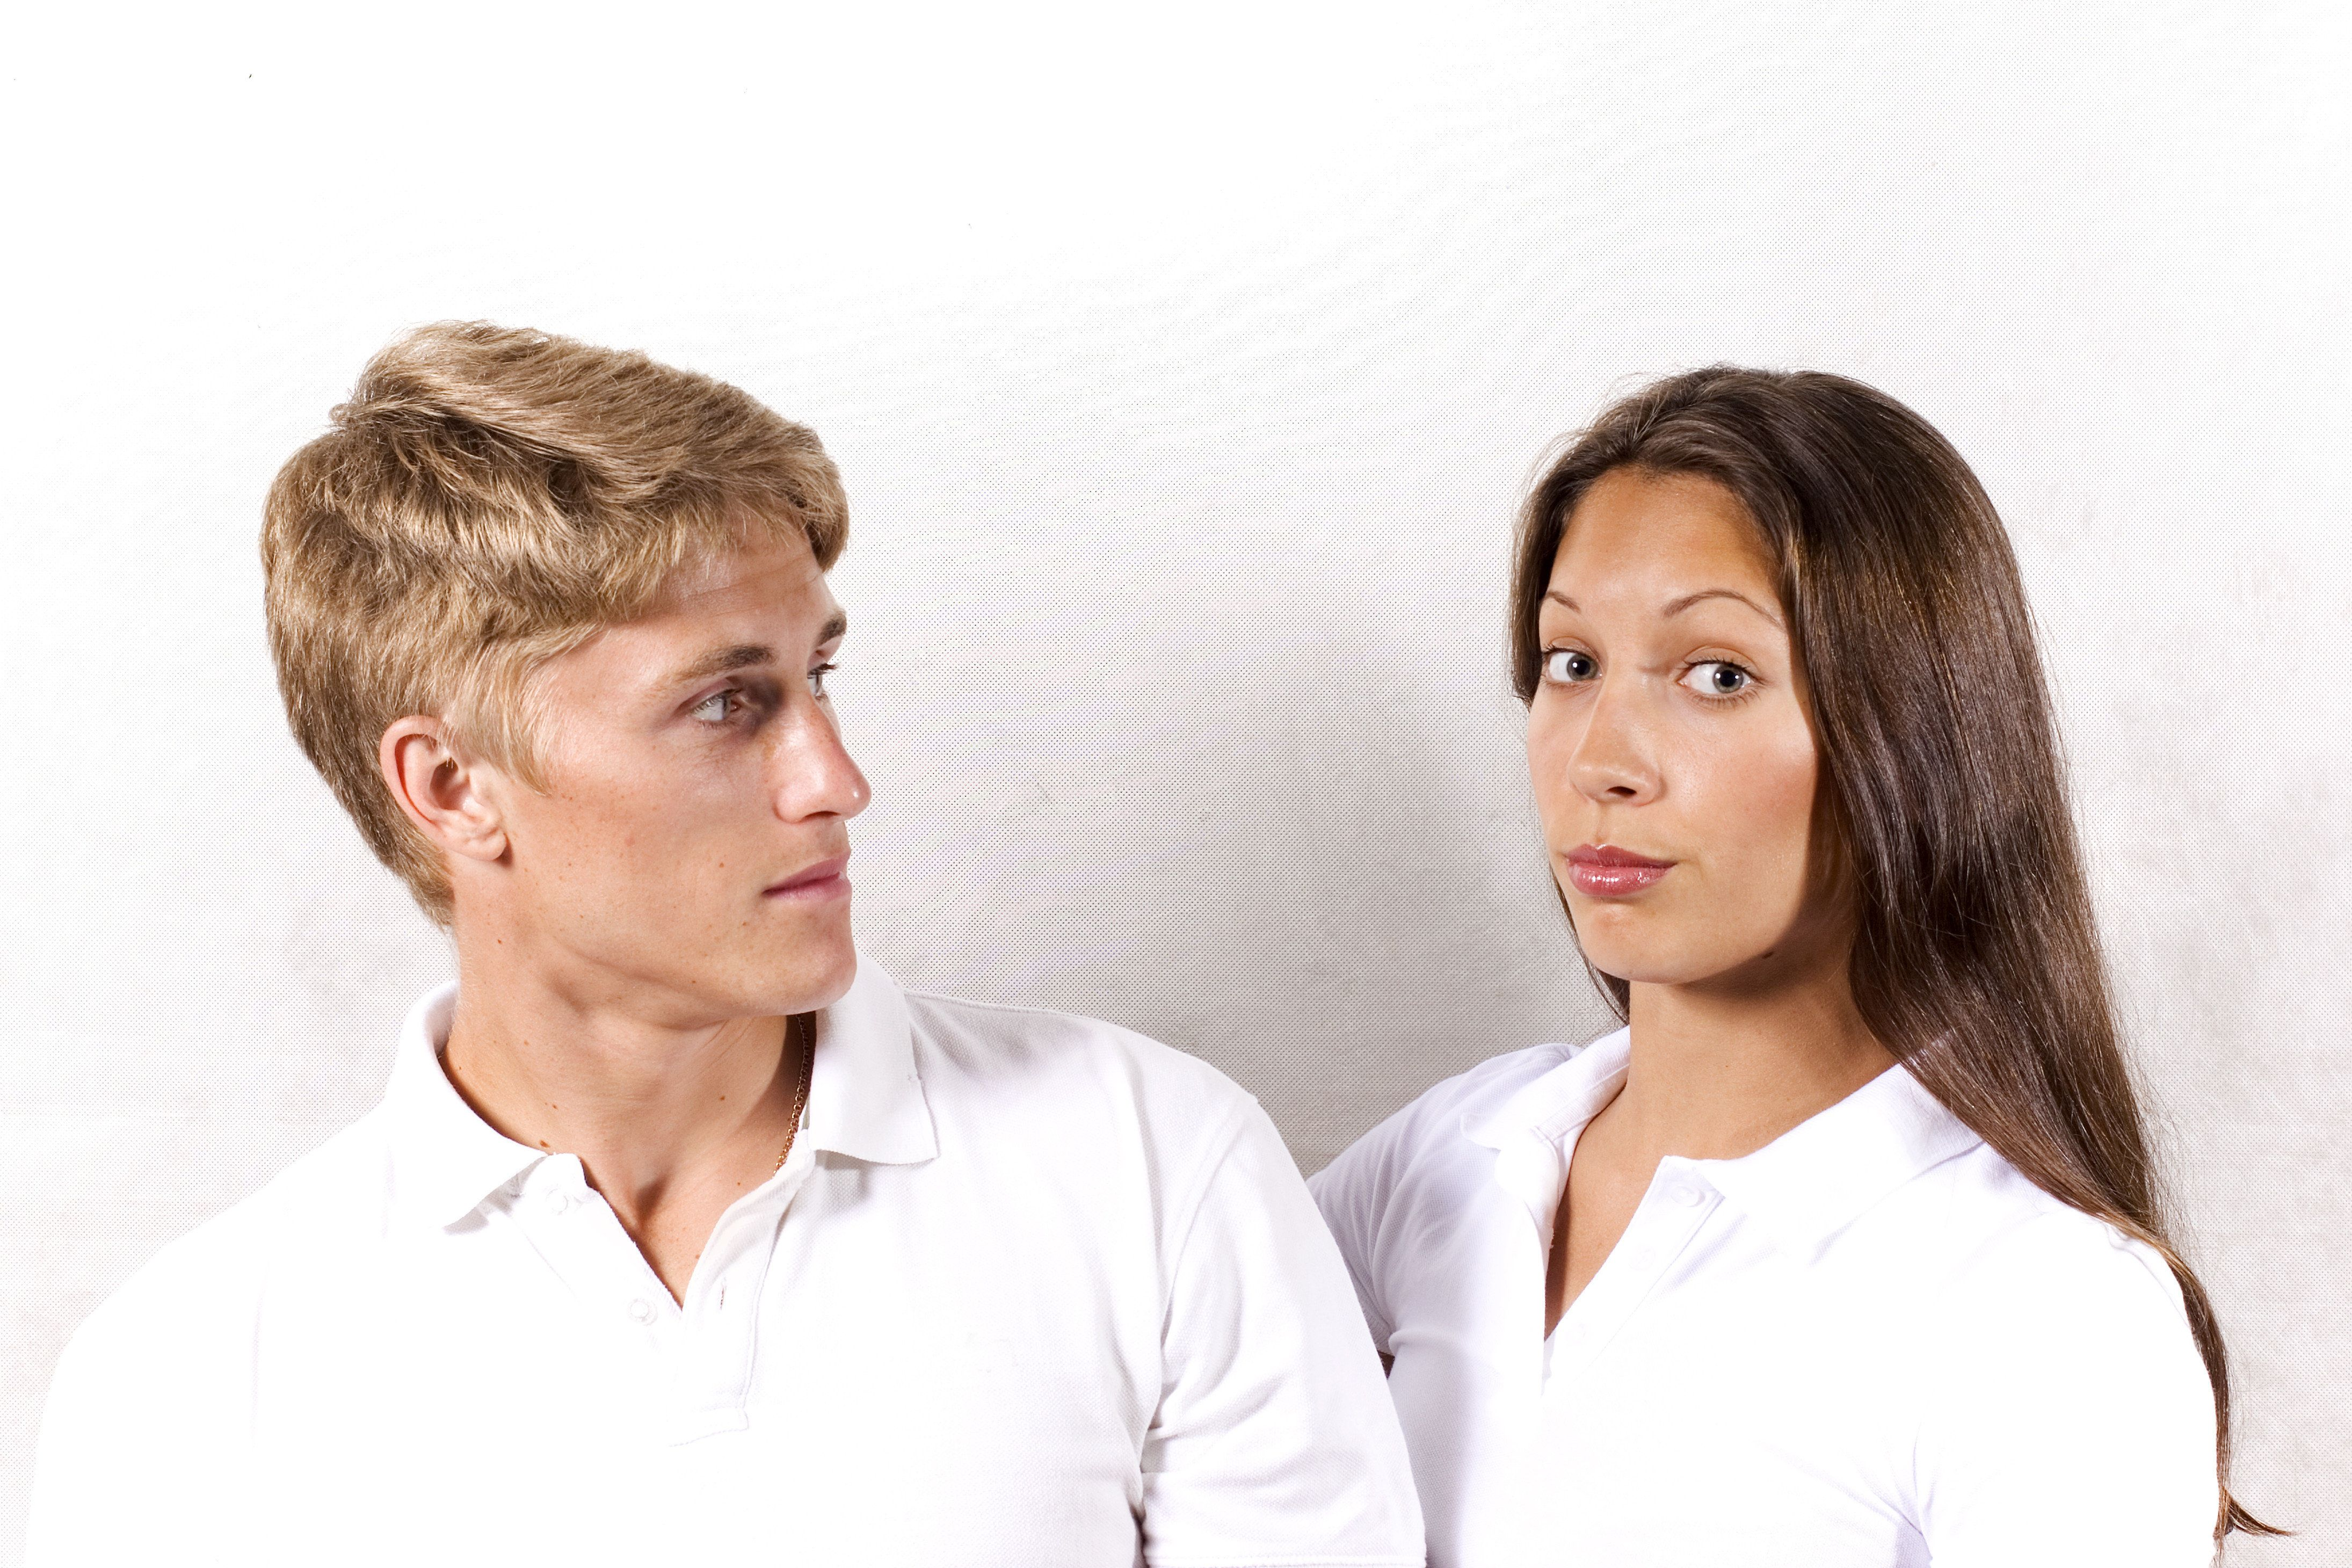 Dating a divorced woman vs never married